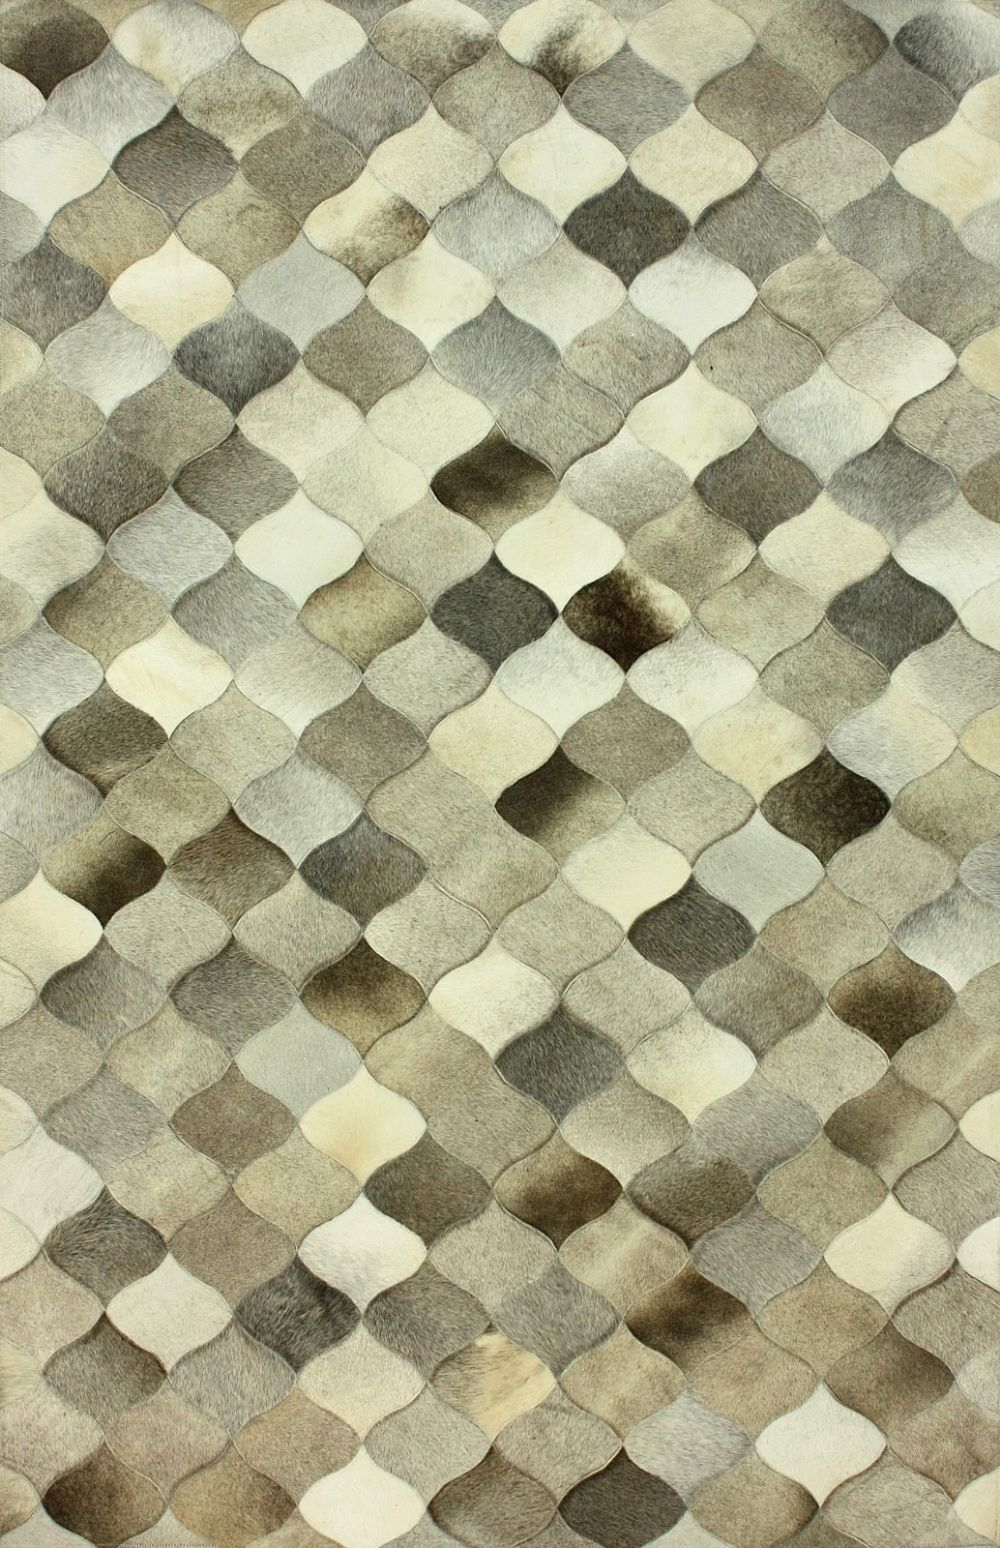 nuloom hides animal inspirations area rug collection